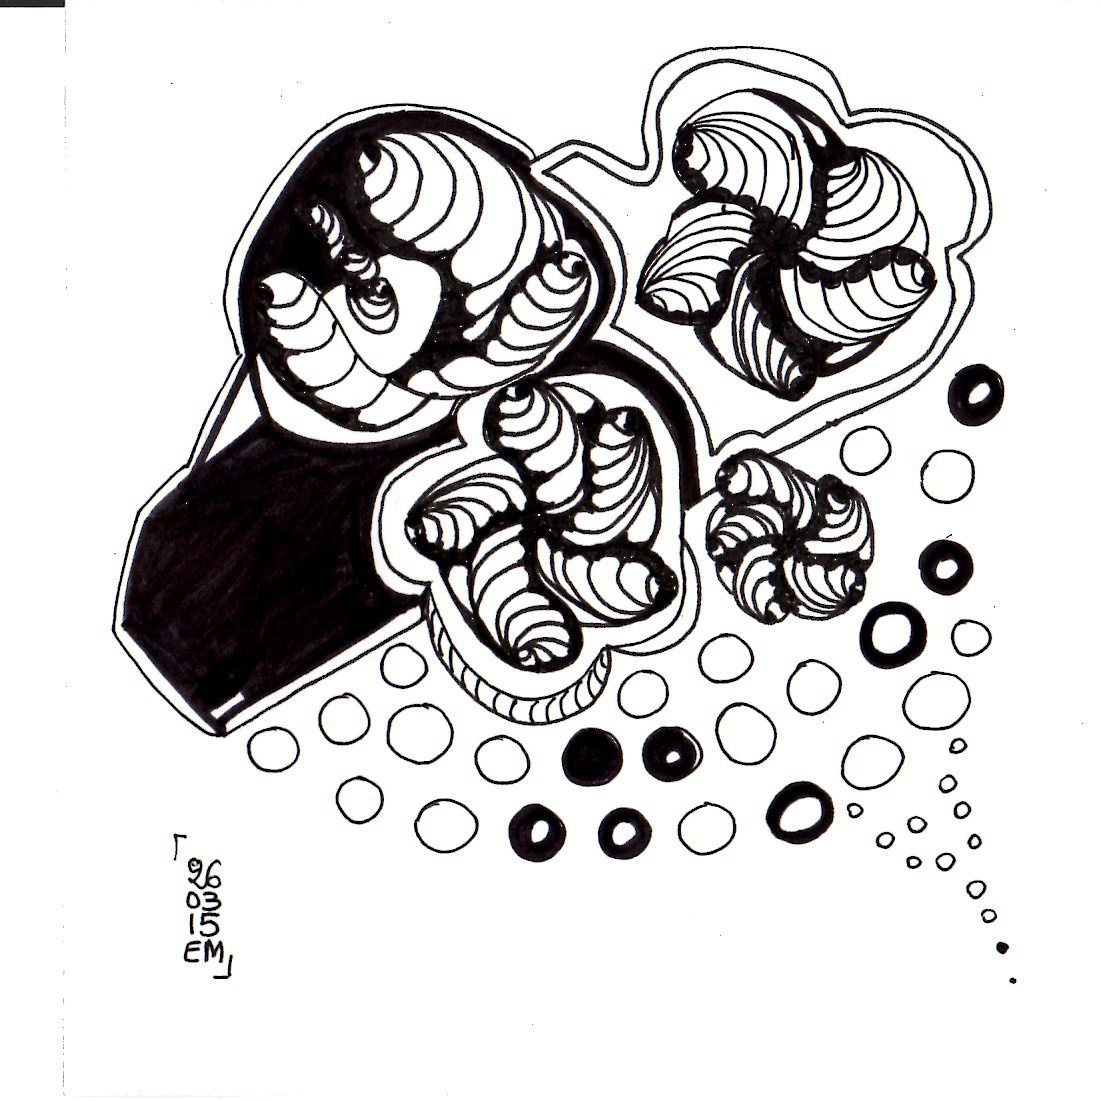 Zentangle® #18 le 26 mars 2015  © eMmA MessanA